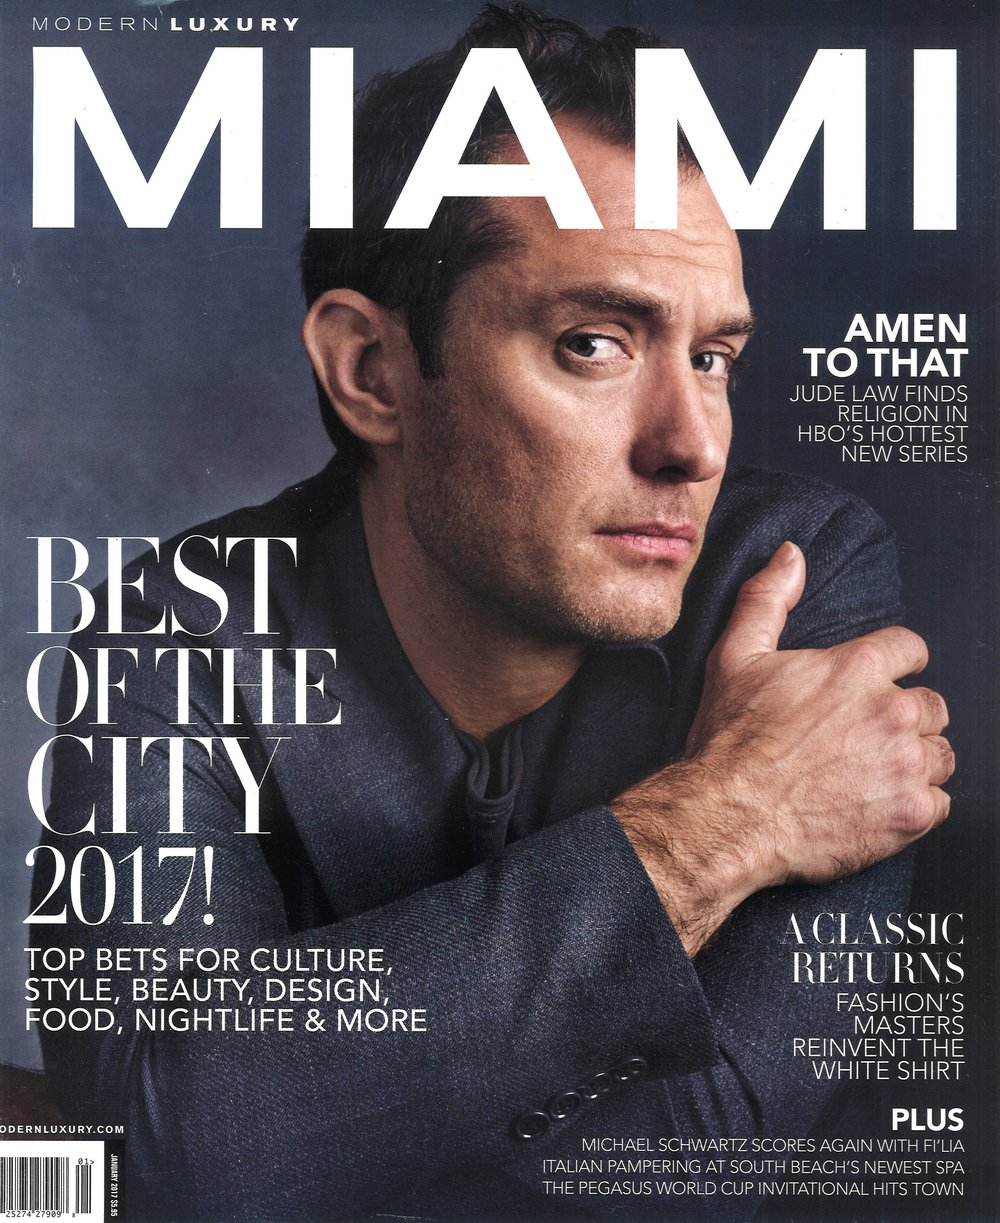 ML Miami jan17 cover.jpg